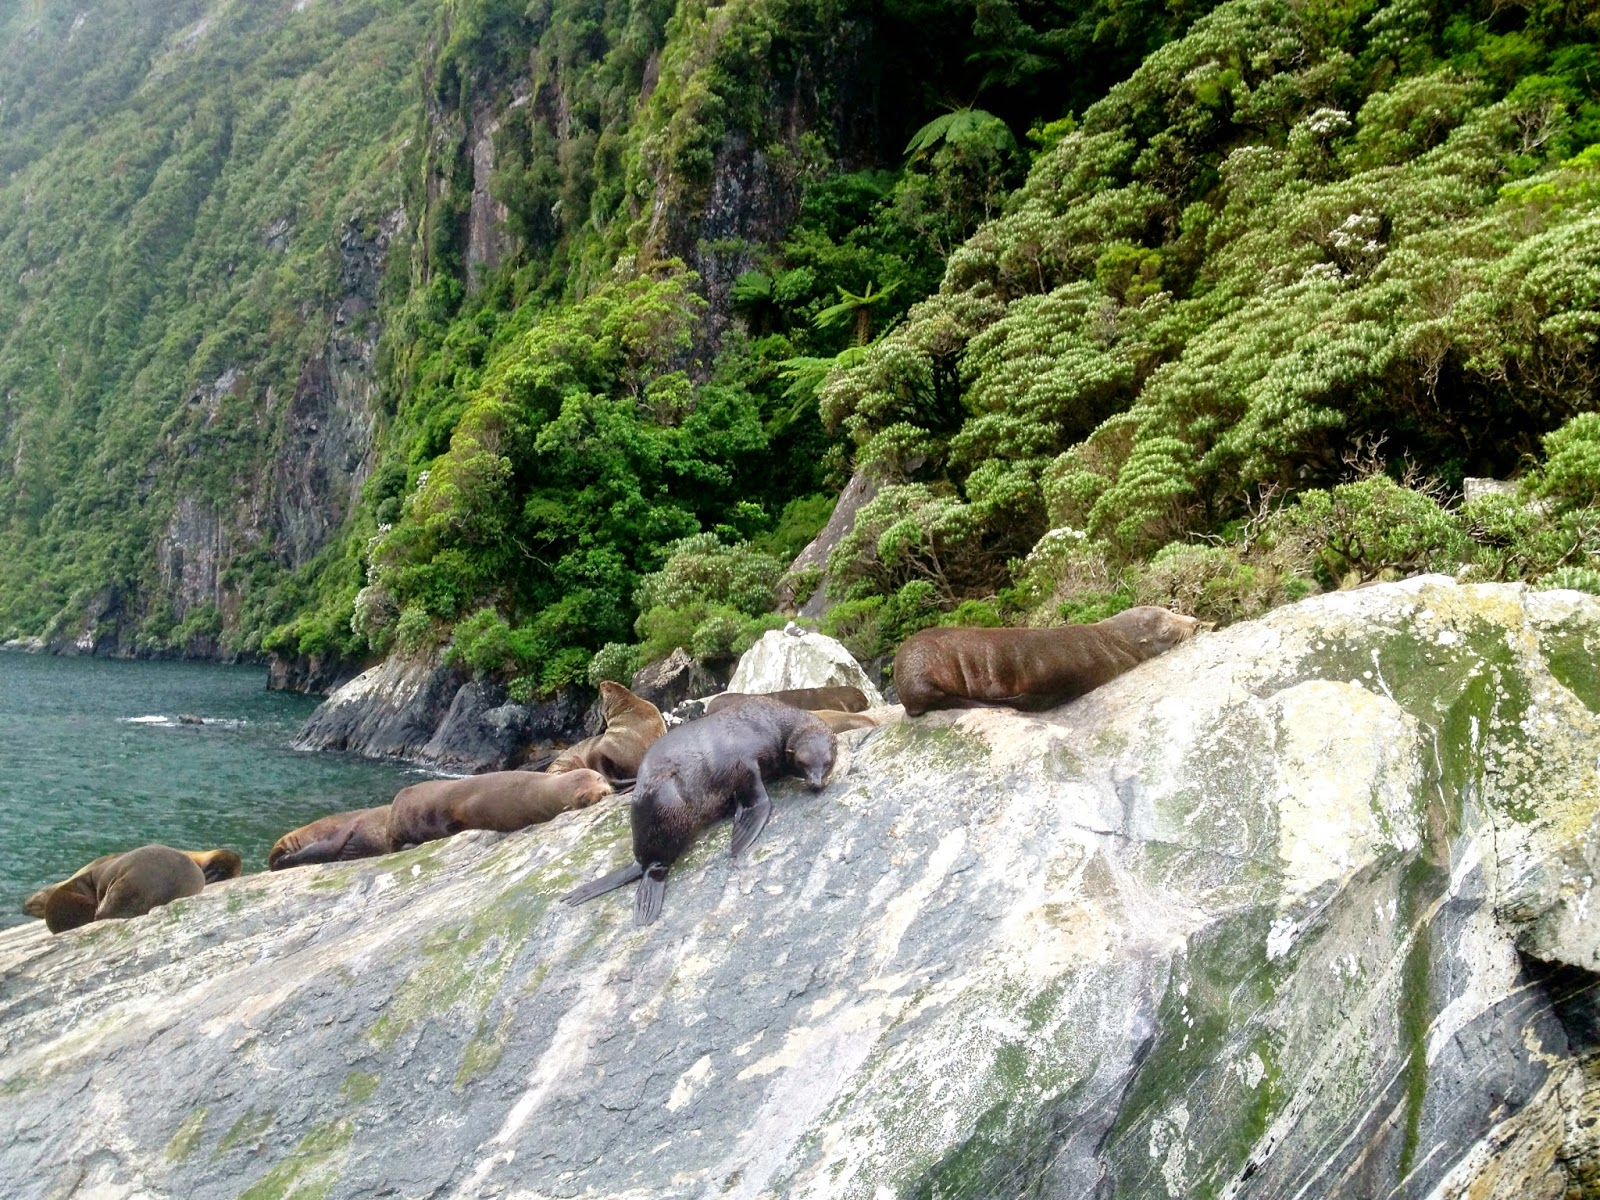 Seals in the Milford Sound, Fjordland, New Zealand